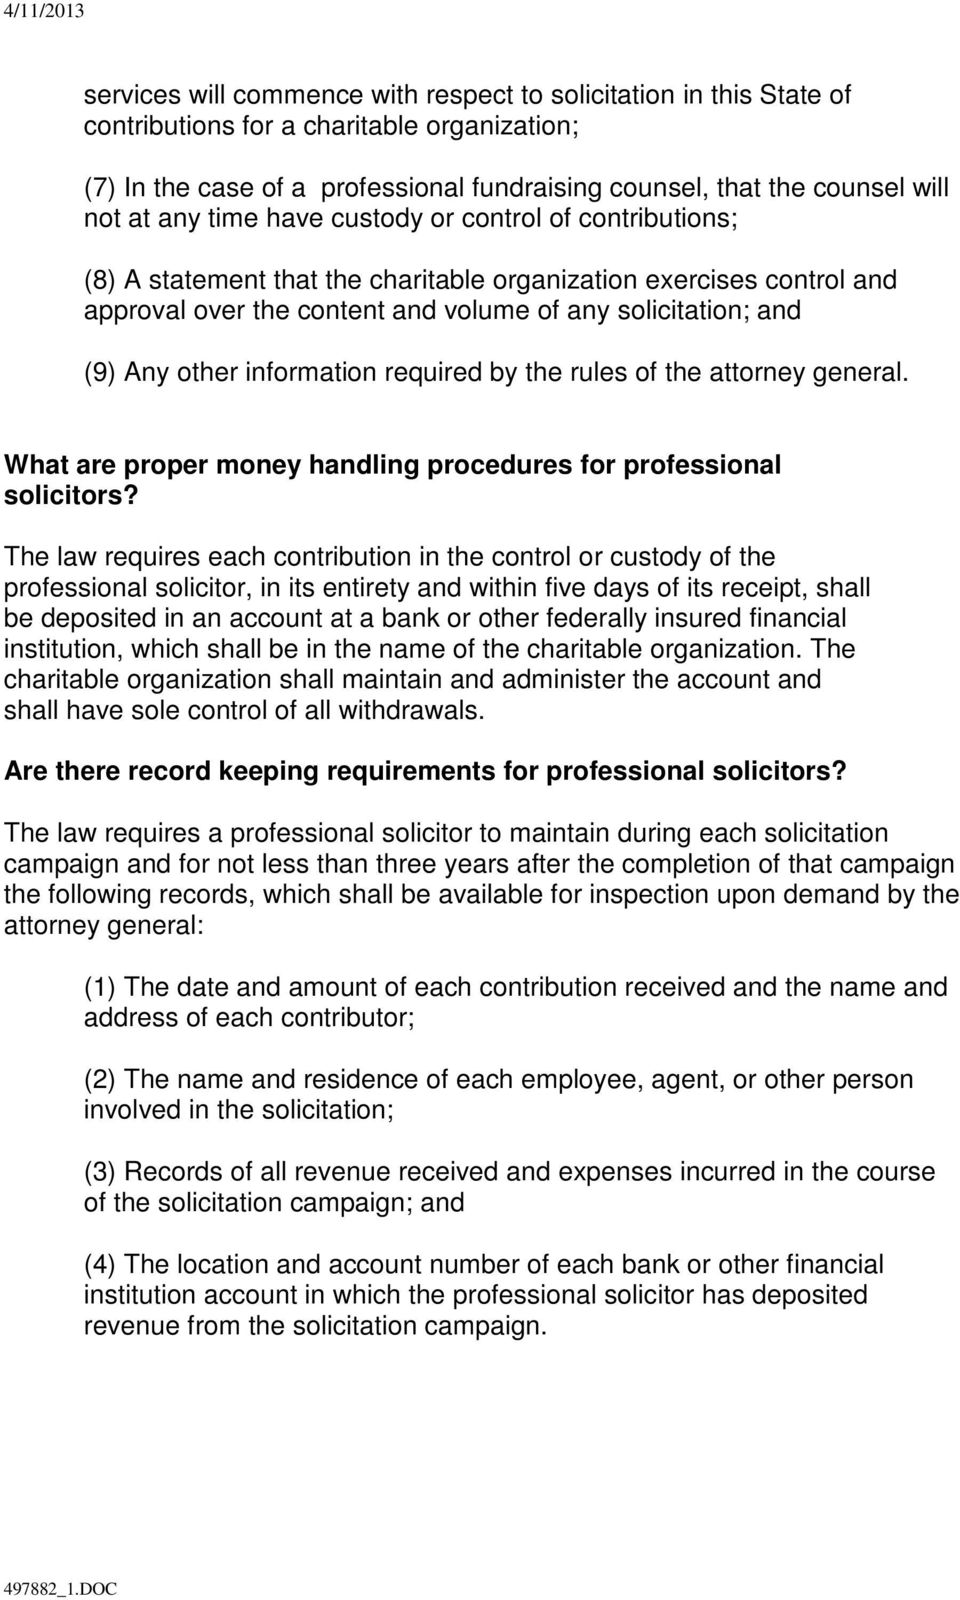 information required by the rules of the attorney general. What are proper money handling procedures for professional solicitors?